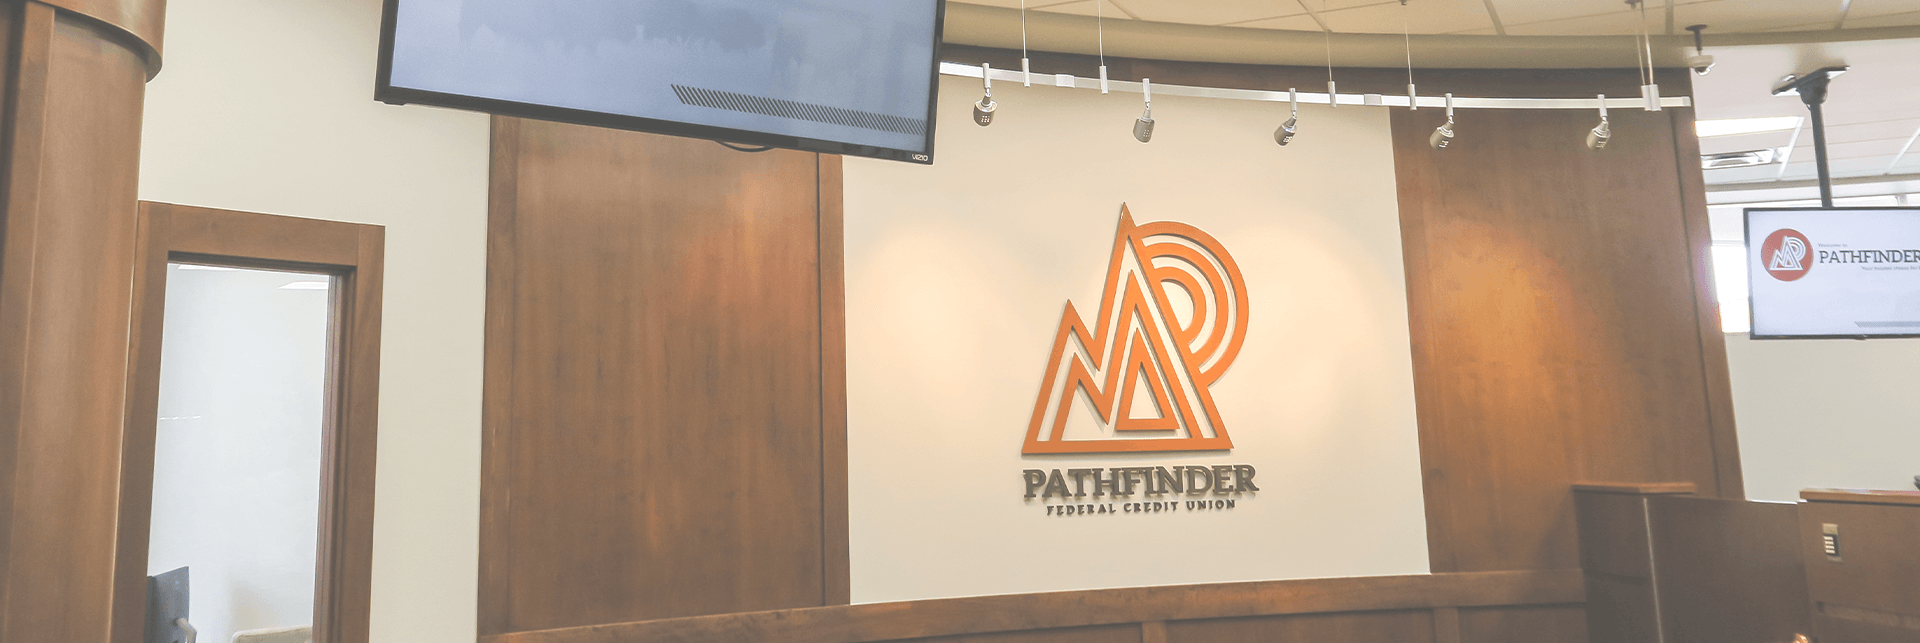 Pathfinder Federal Credit Union Hero